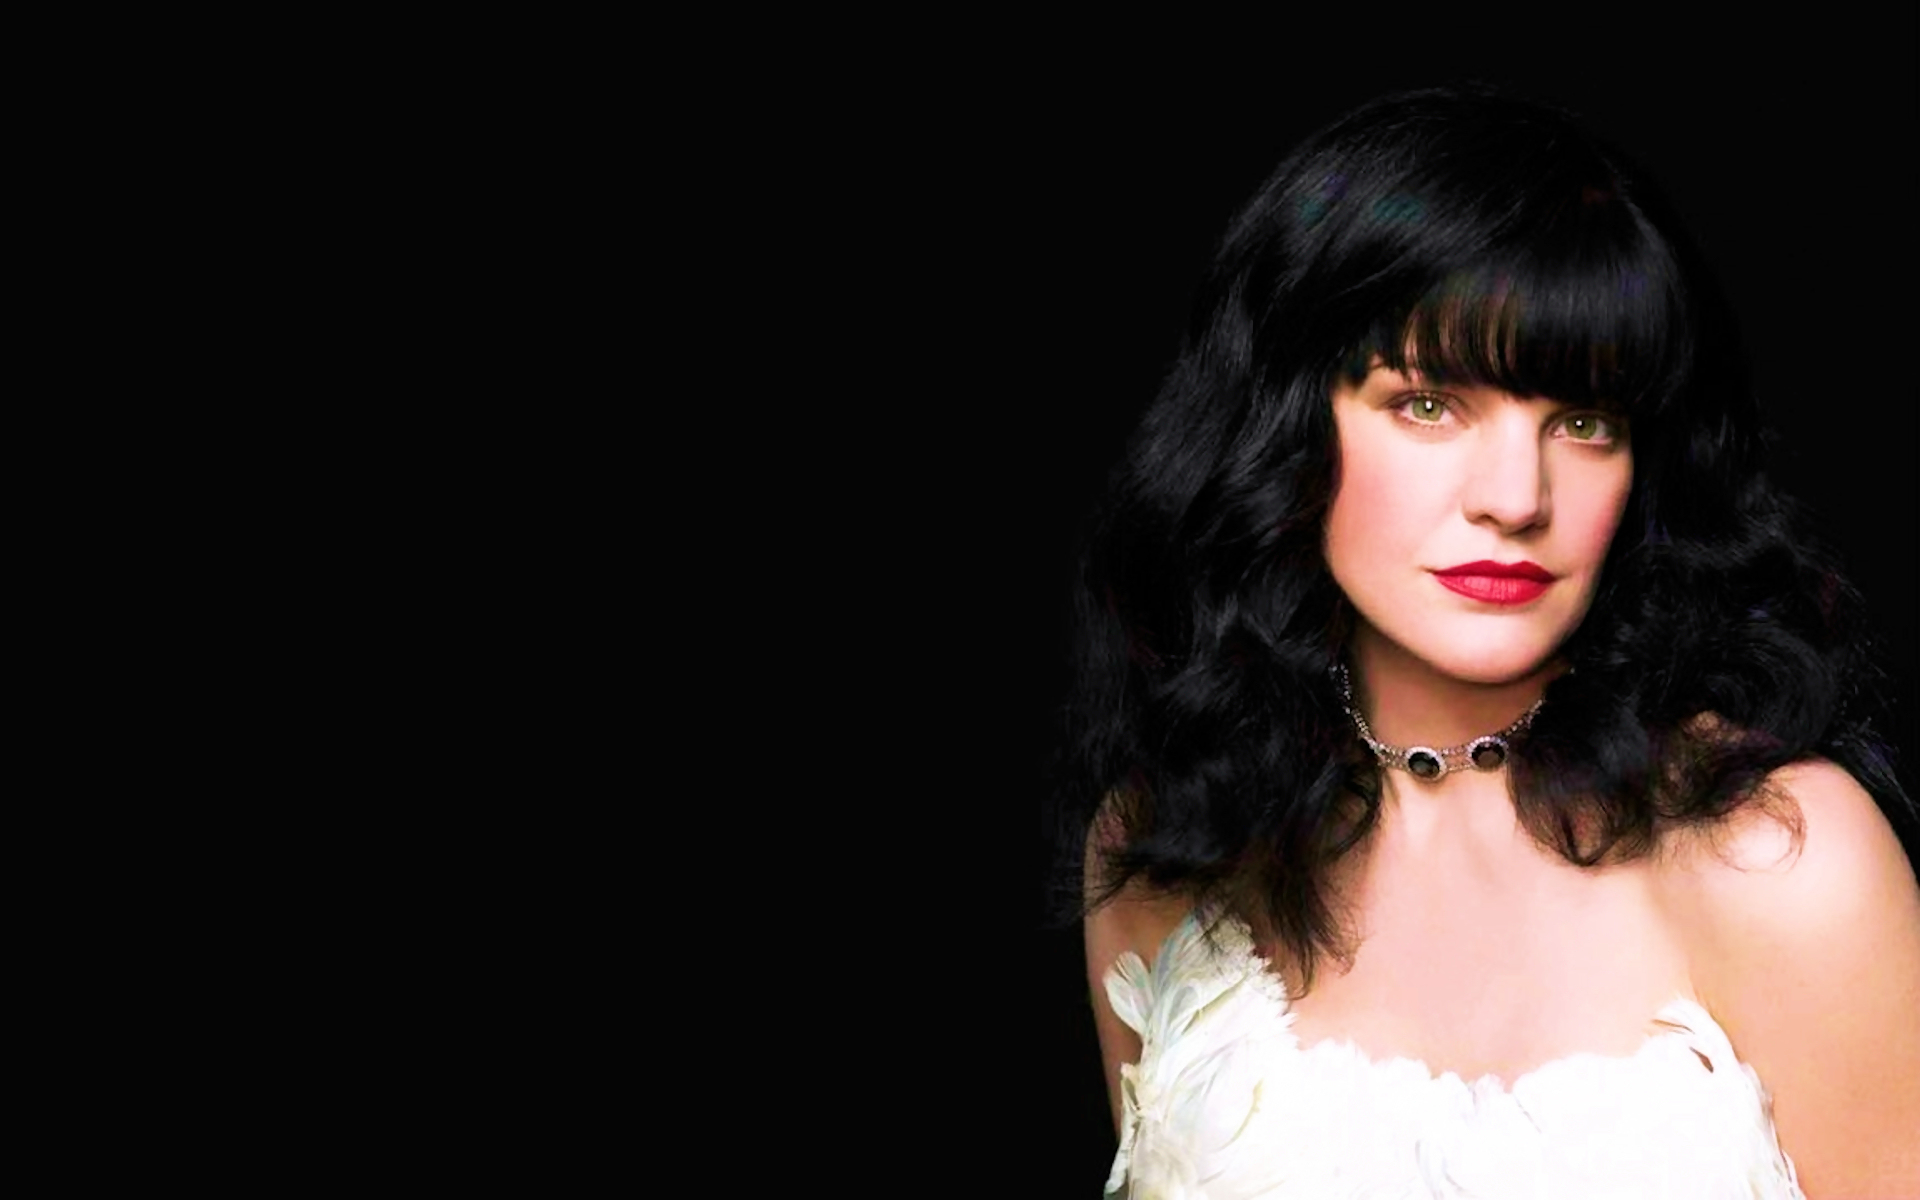 ncis girls images abby - photo #10